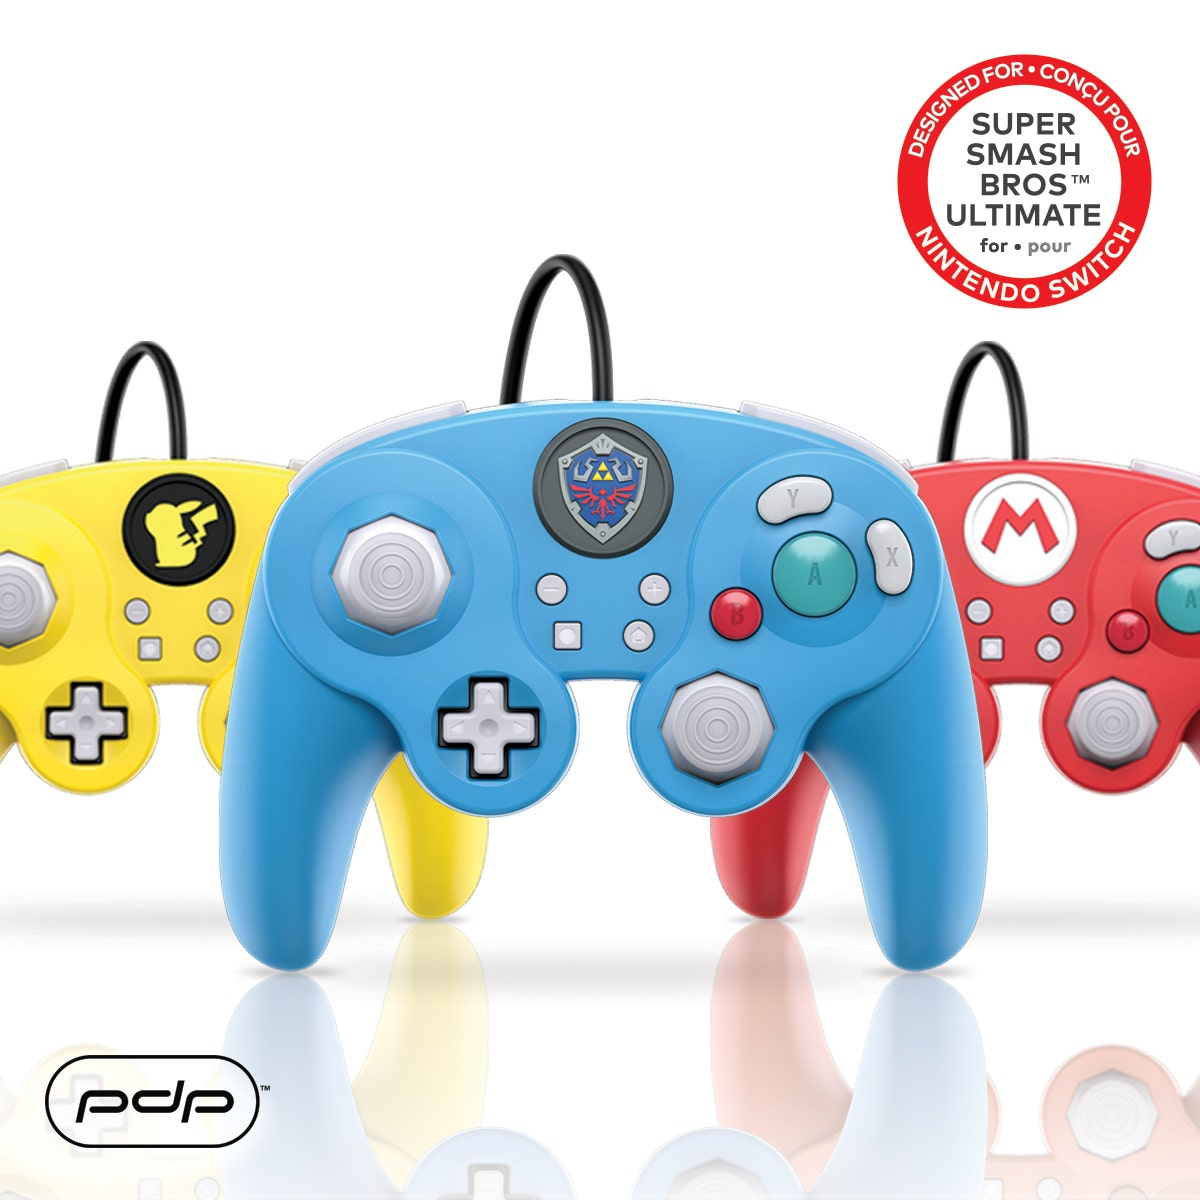 HELP! New GameCube controllers for Switch randomly attacking